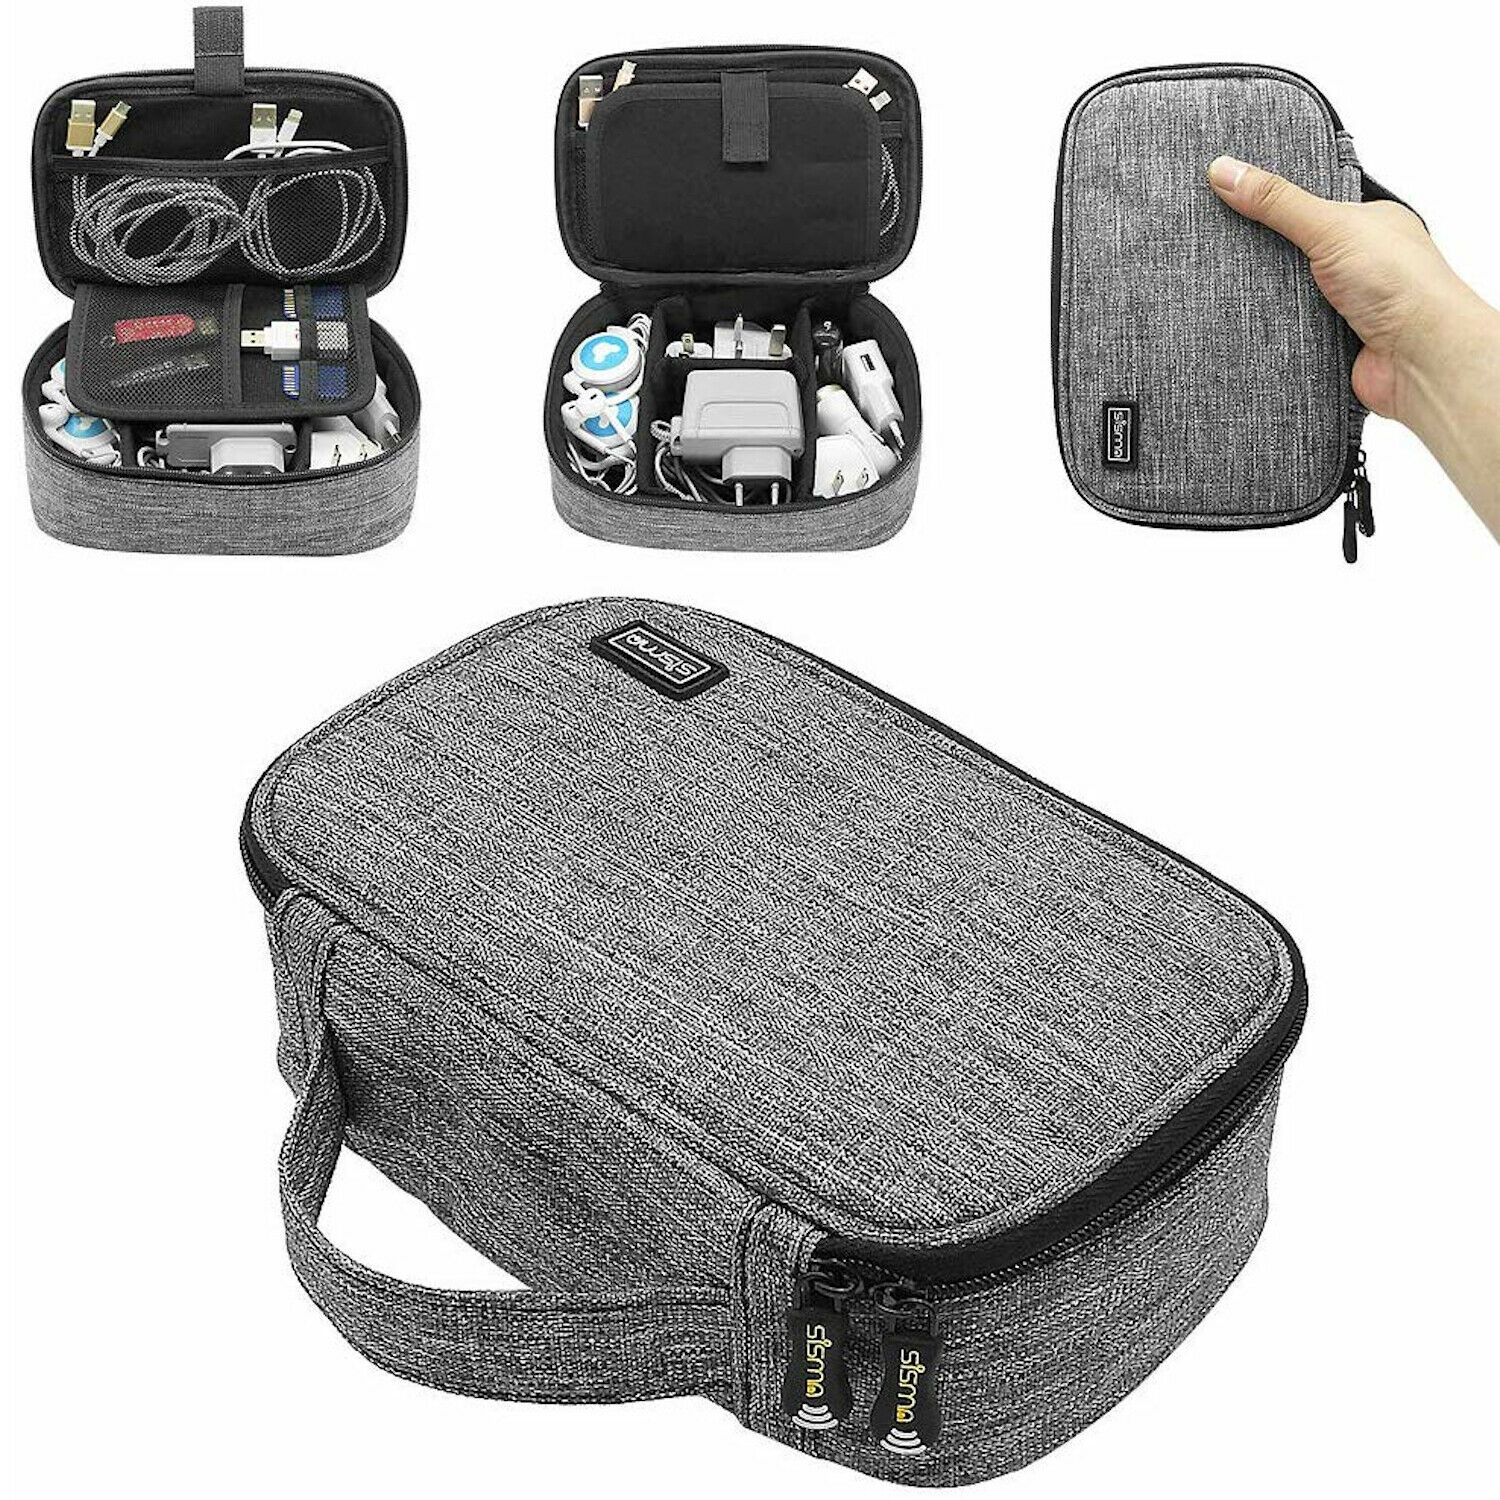 Travel Electronics Organizer Case Bag Cable Charger Accessories Carryi... - s l1600